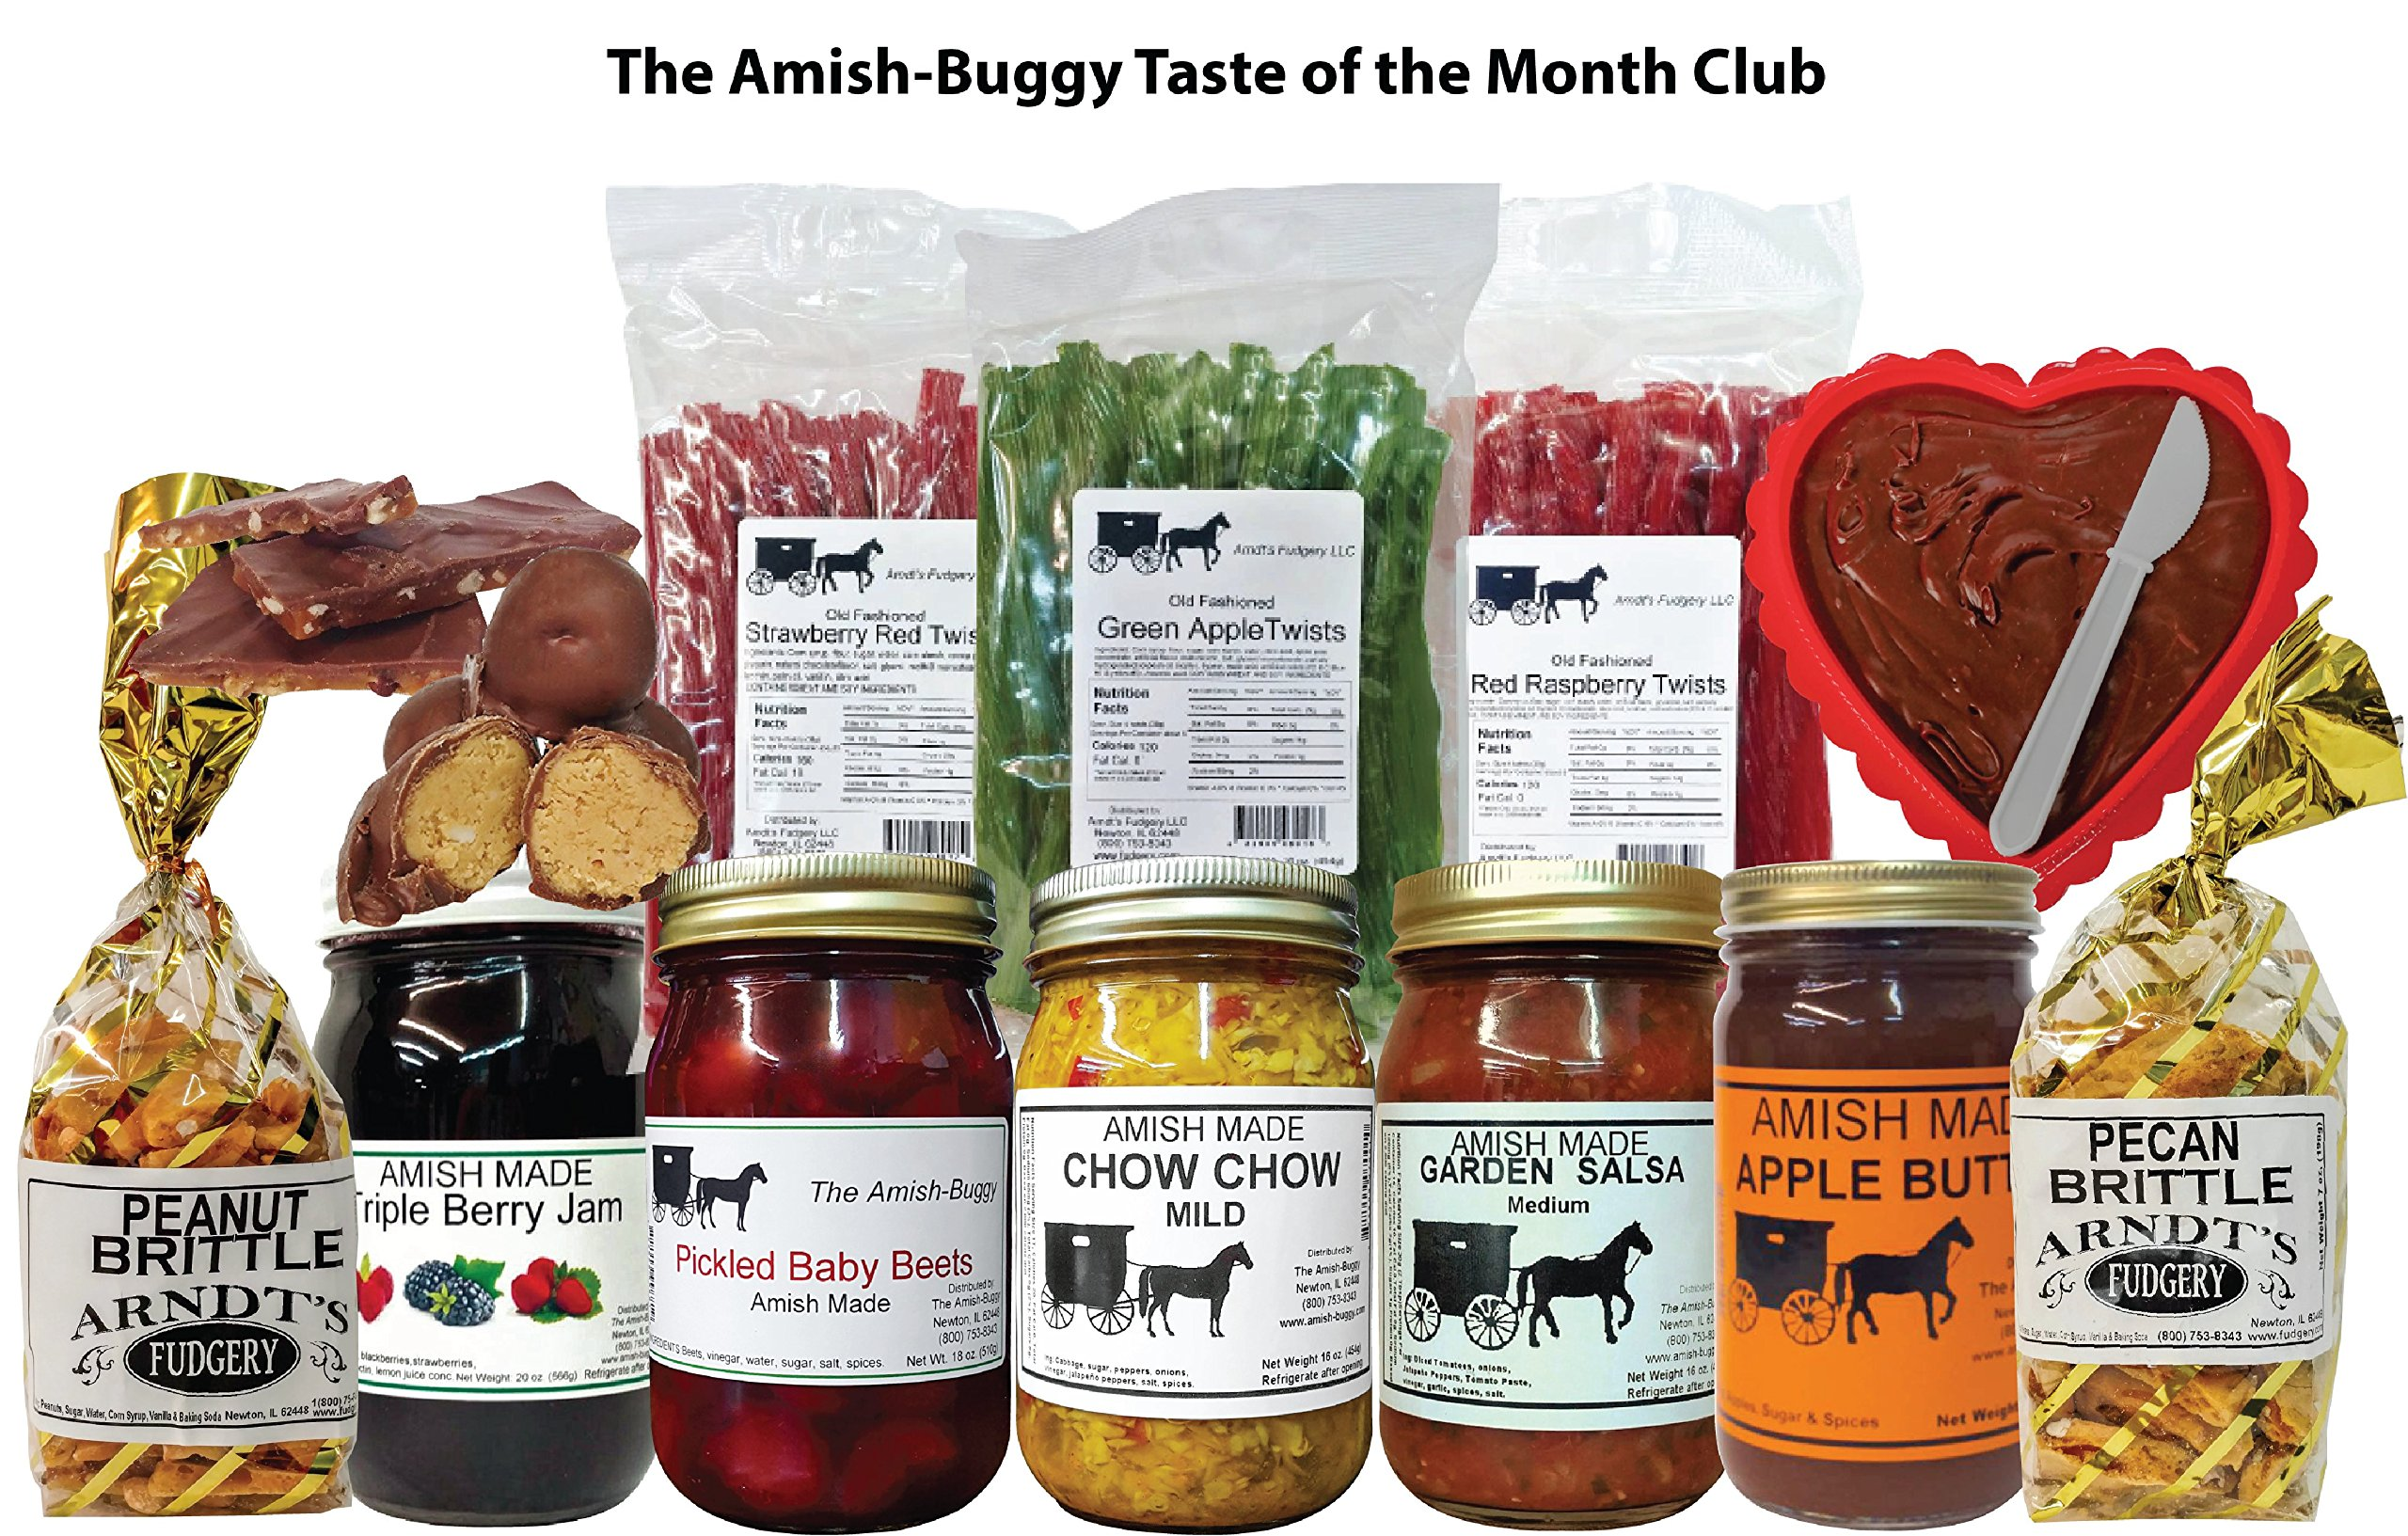 Taste of the Month Club by Amish Buggy